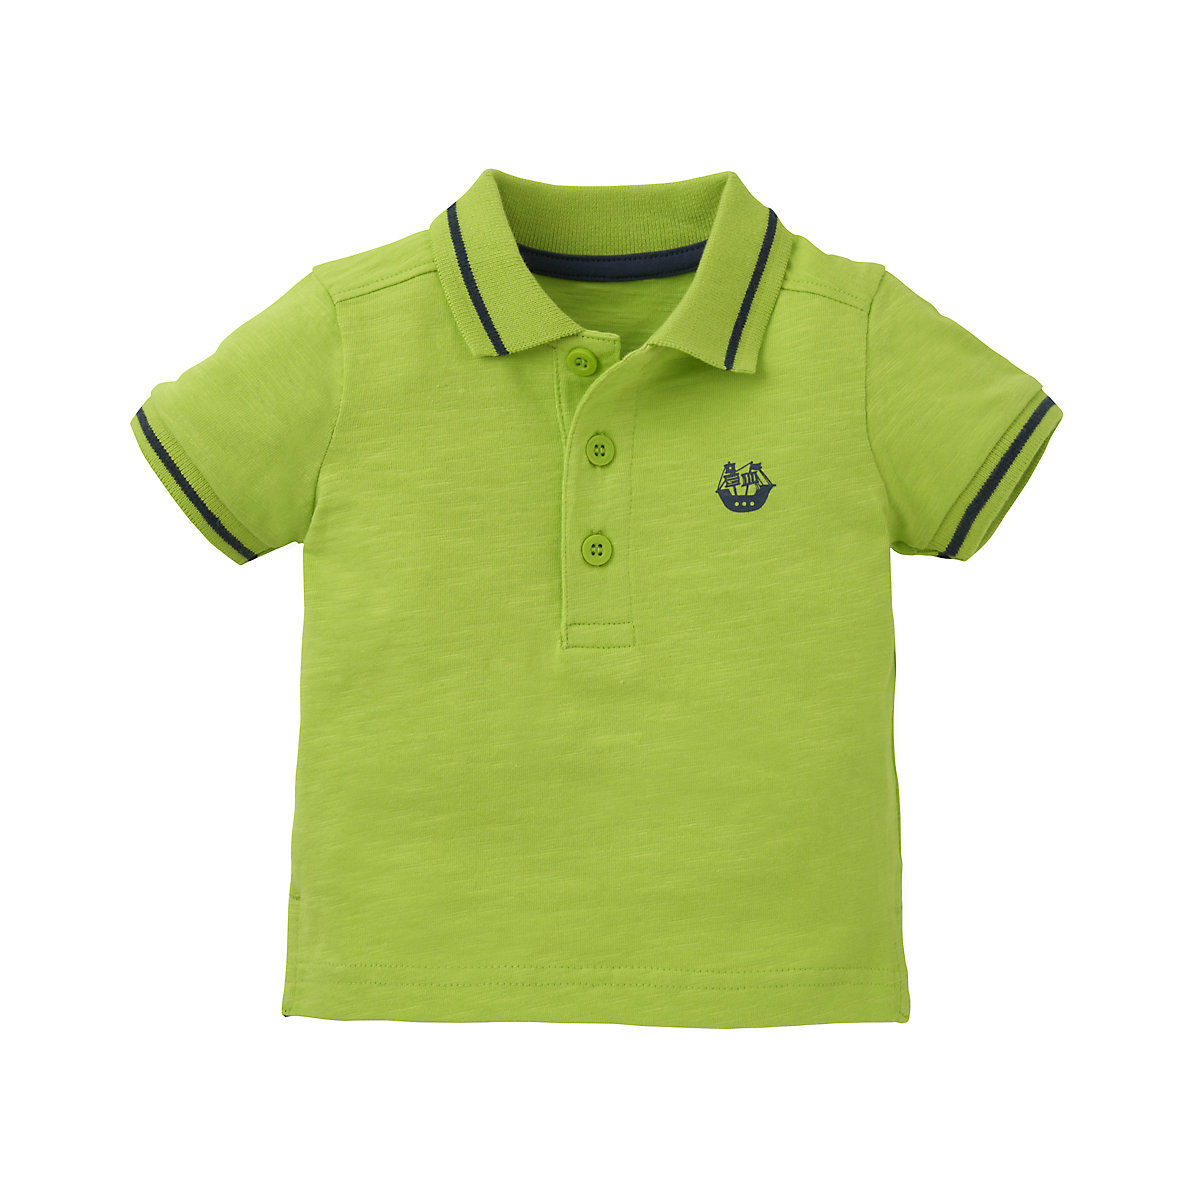 Different fabrics of baby boys' polo shirts When shopping for polo shirts for baby boys, one of the most important features to consider is the fabric type. Popular options include pique, jersey, and polyester.